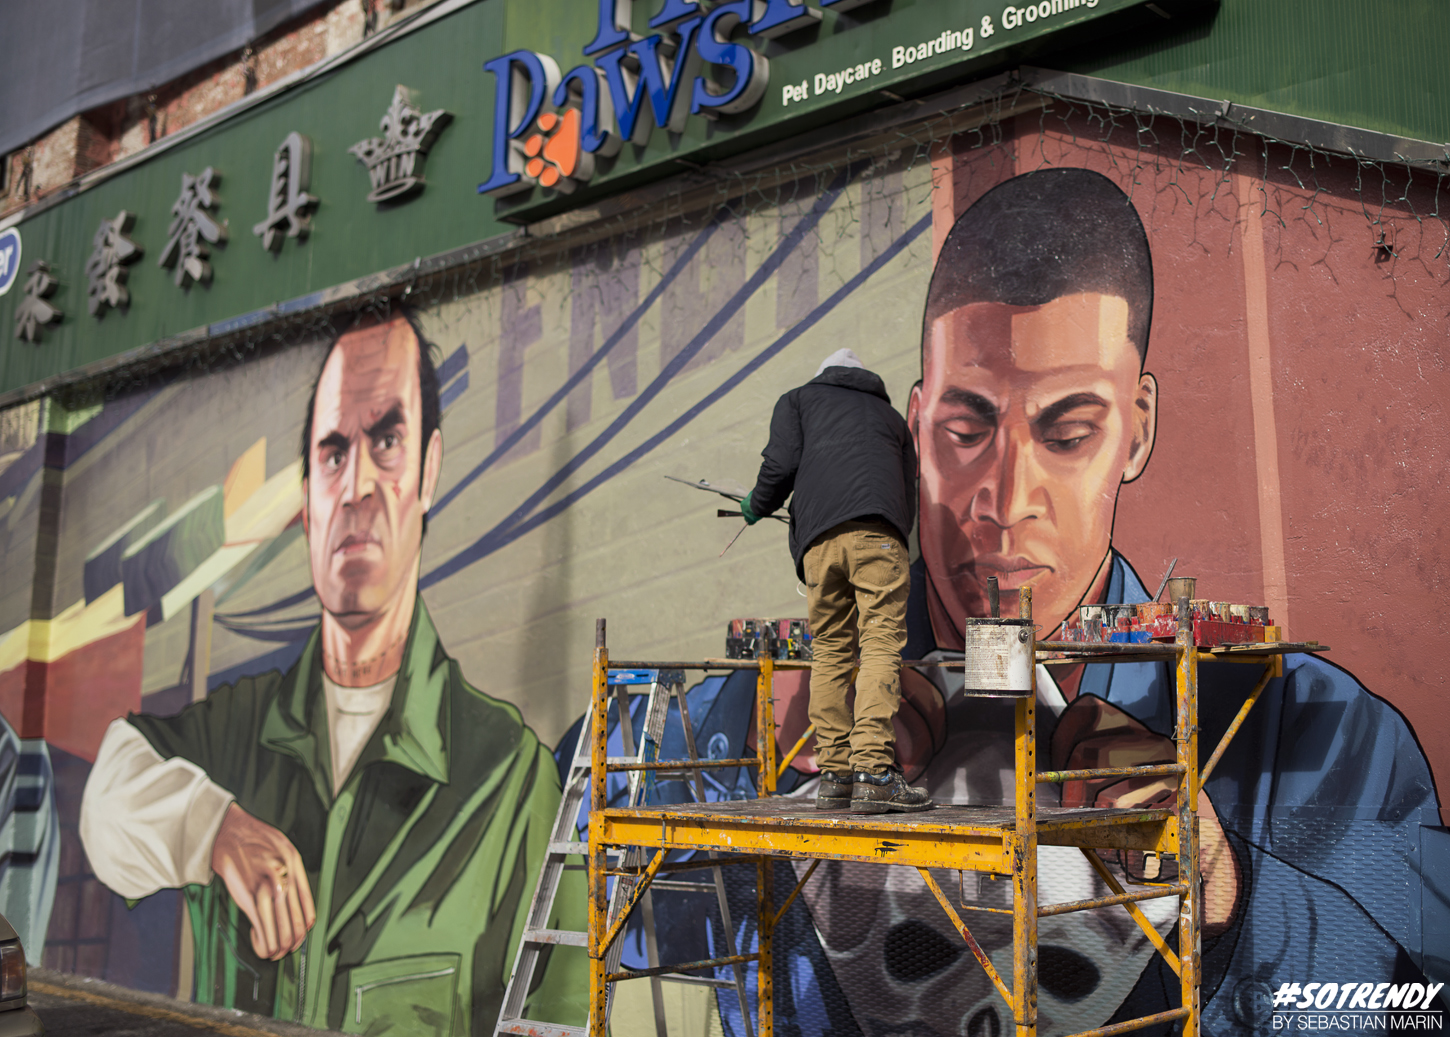 GTA Mural in Soho